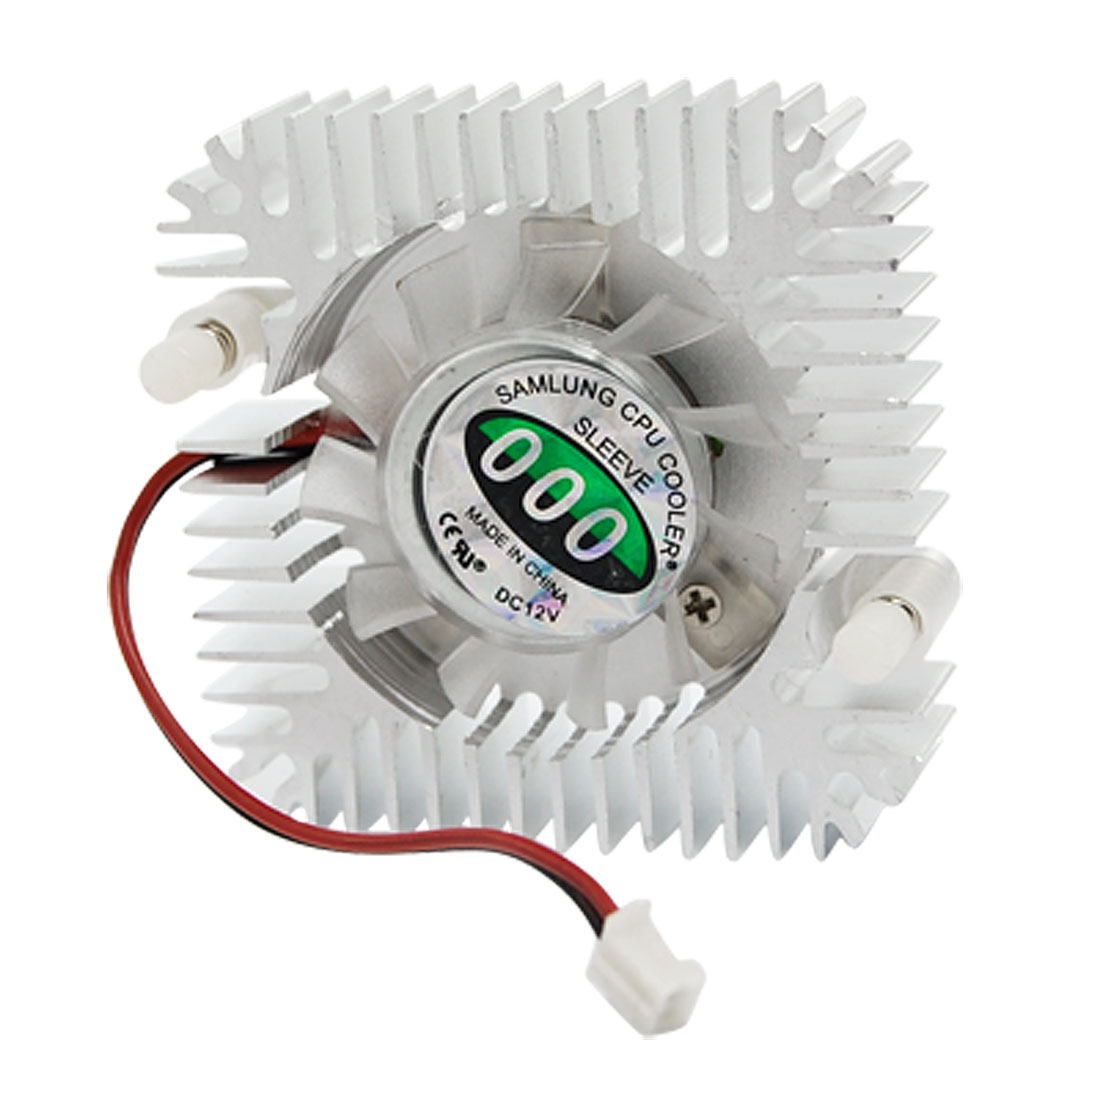 Computer VGA Video Card Cooler Cooling Fan Alloy Heatsink 2 Pin DC 12V